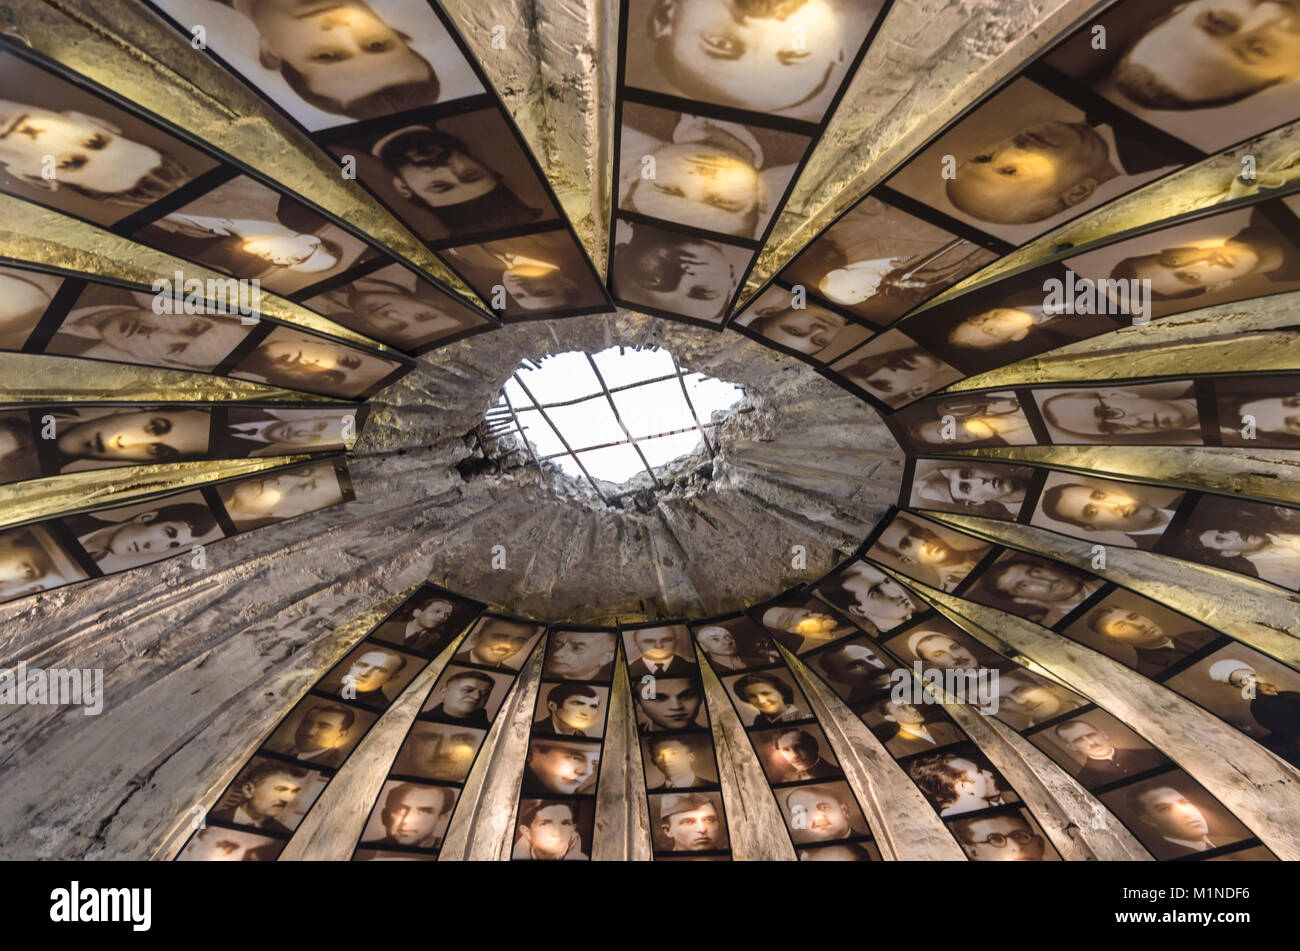 TIRANA, ALBANIA - 7 JULY 2017: The Bunk art Museum is situated inside an atomic bunker of the Enver Hoxha. - Stock Image